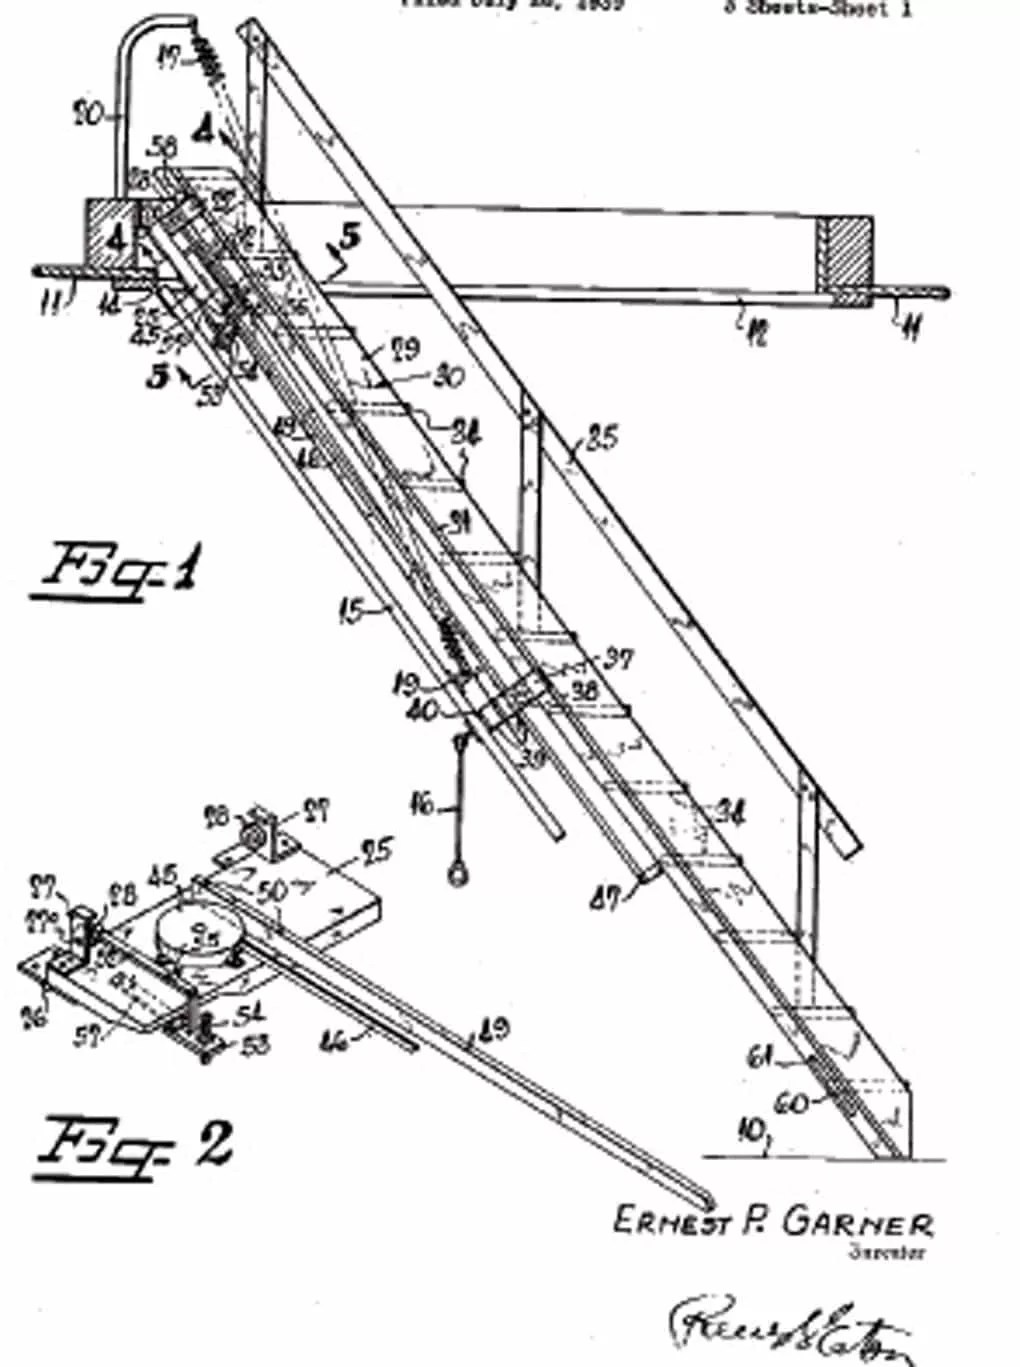 hight resolution of nielson who has her masters in history looked in the u s patent and trademark office records and discovered that garner s disappearing stairs first were